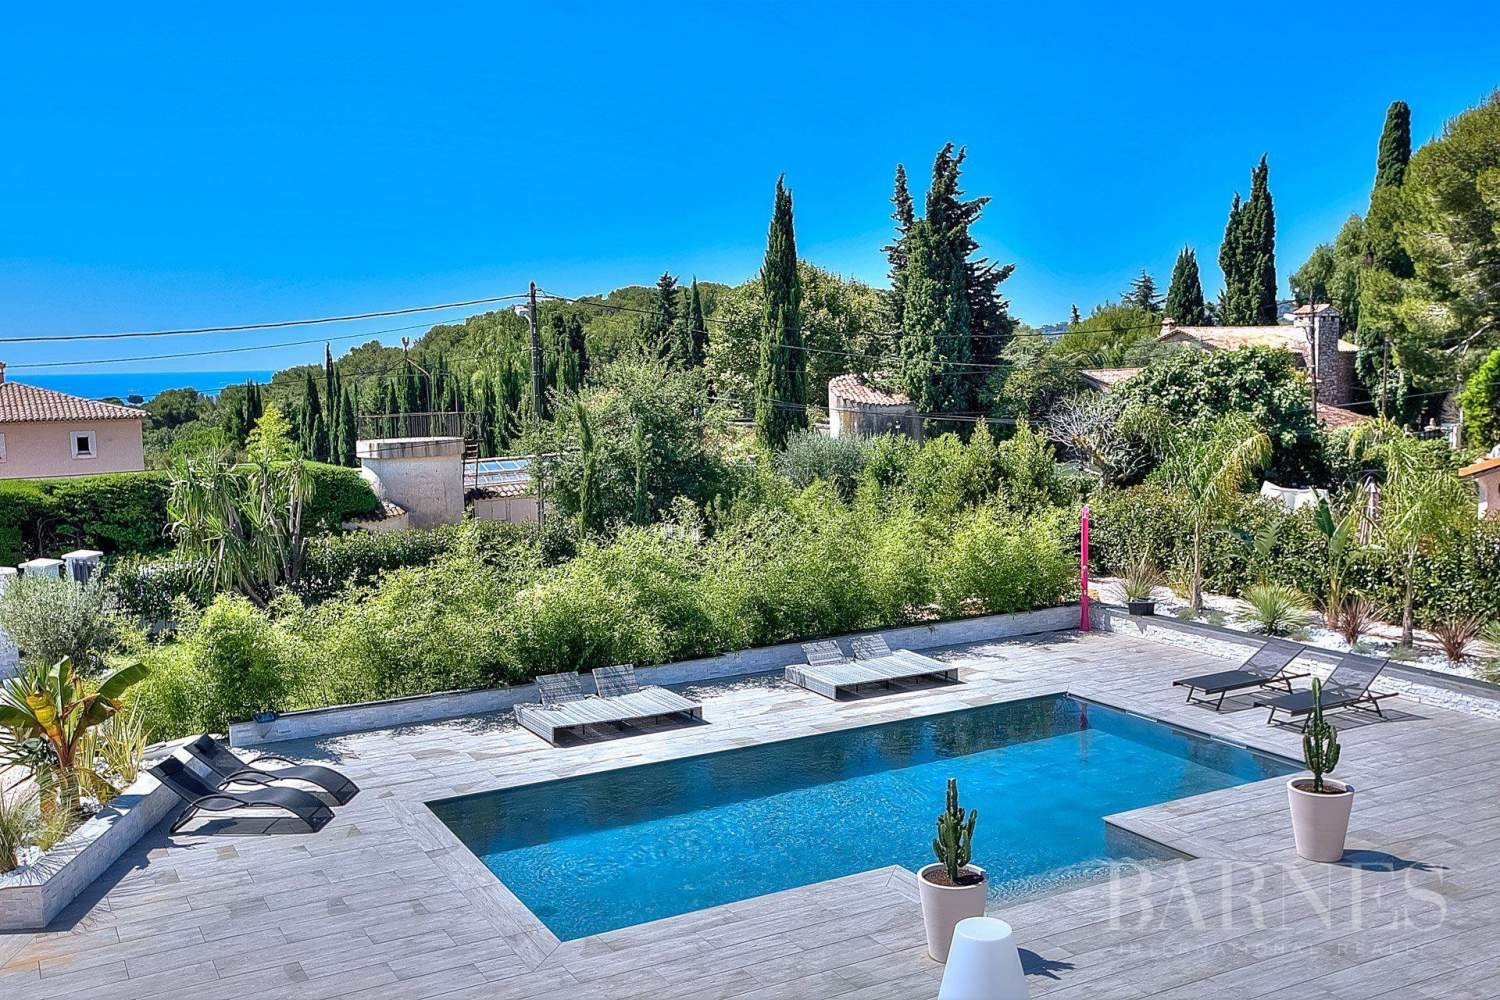 ANTIBES - ROOF TERRACE WITH SEA VIEW - SWIMMING POOL - 4 BEDROOMS picture 1